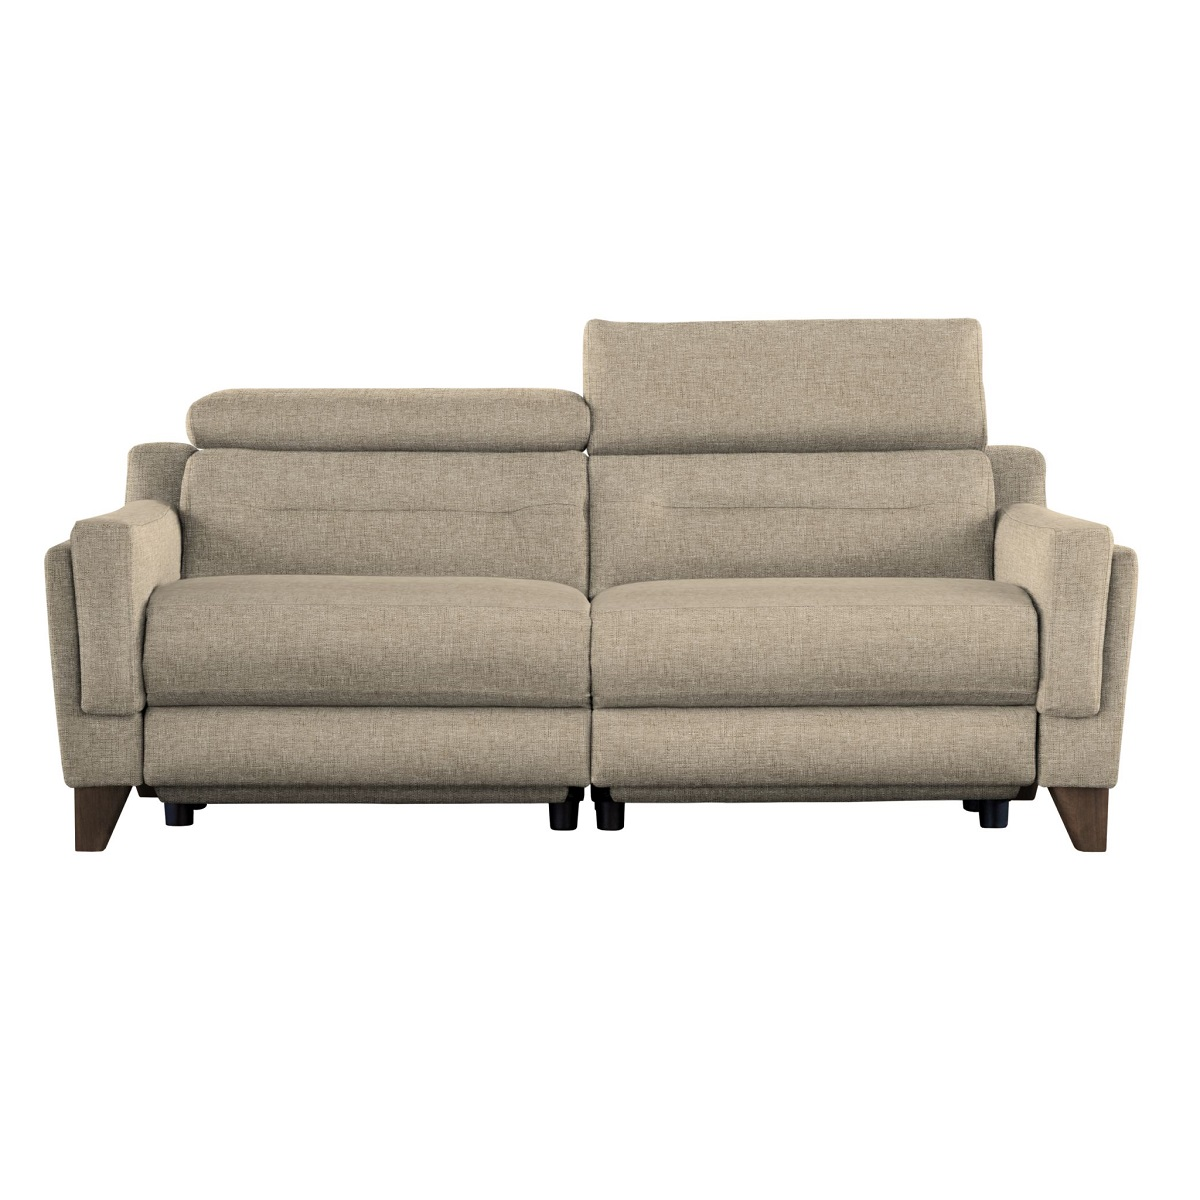 Design 1801 Large 2 Seat Sofa Double Power